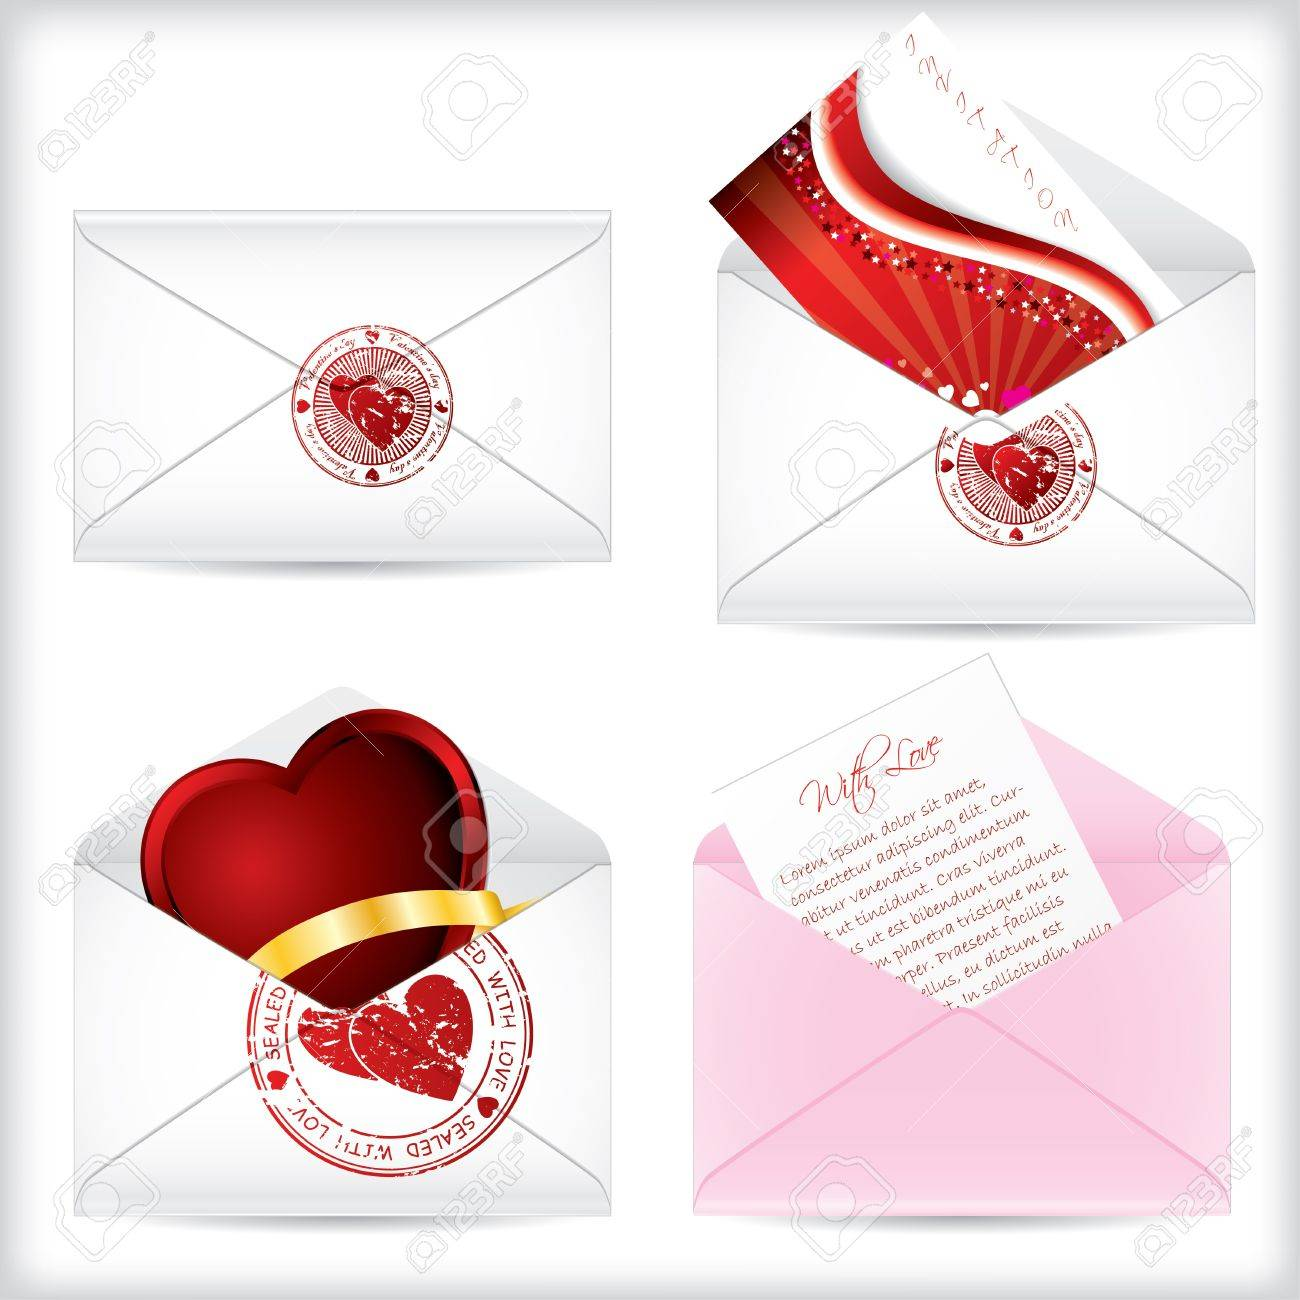 Love letters open and sealed with various things inside Stock Vector - 12004331